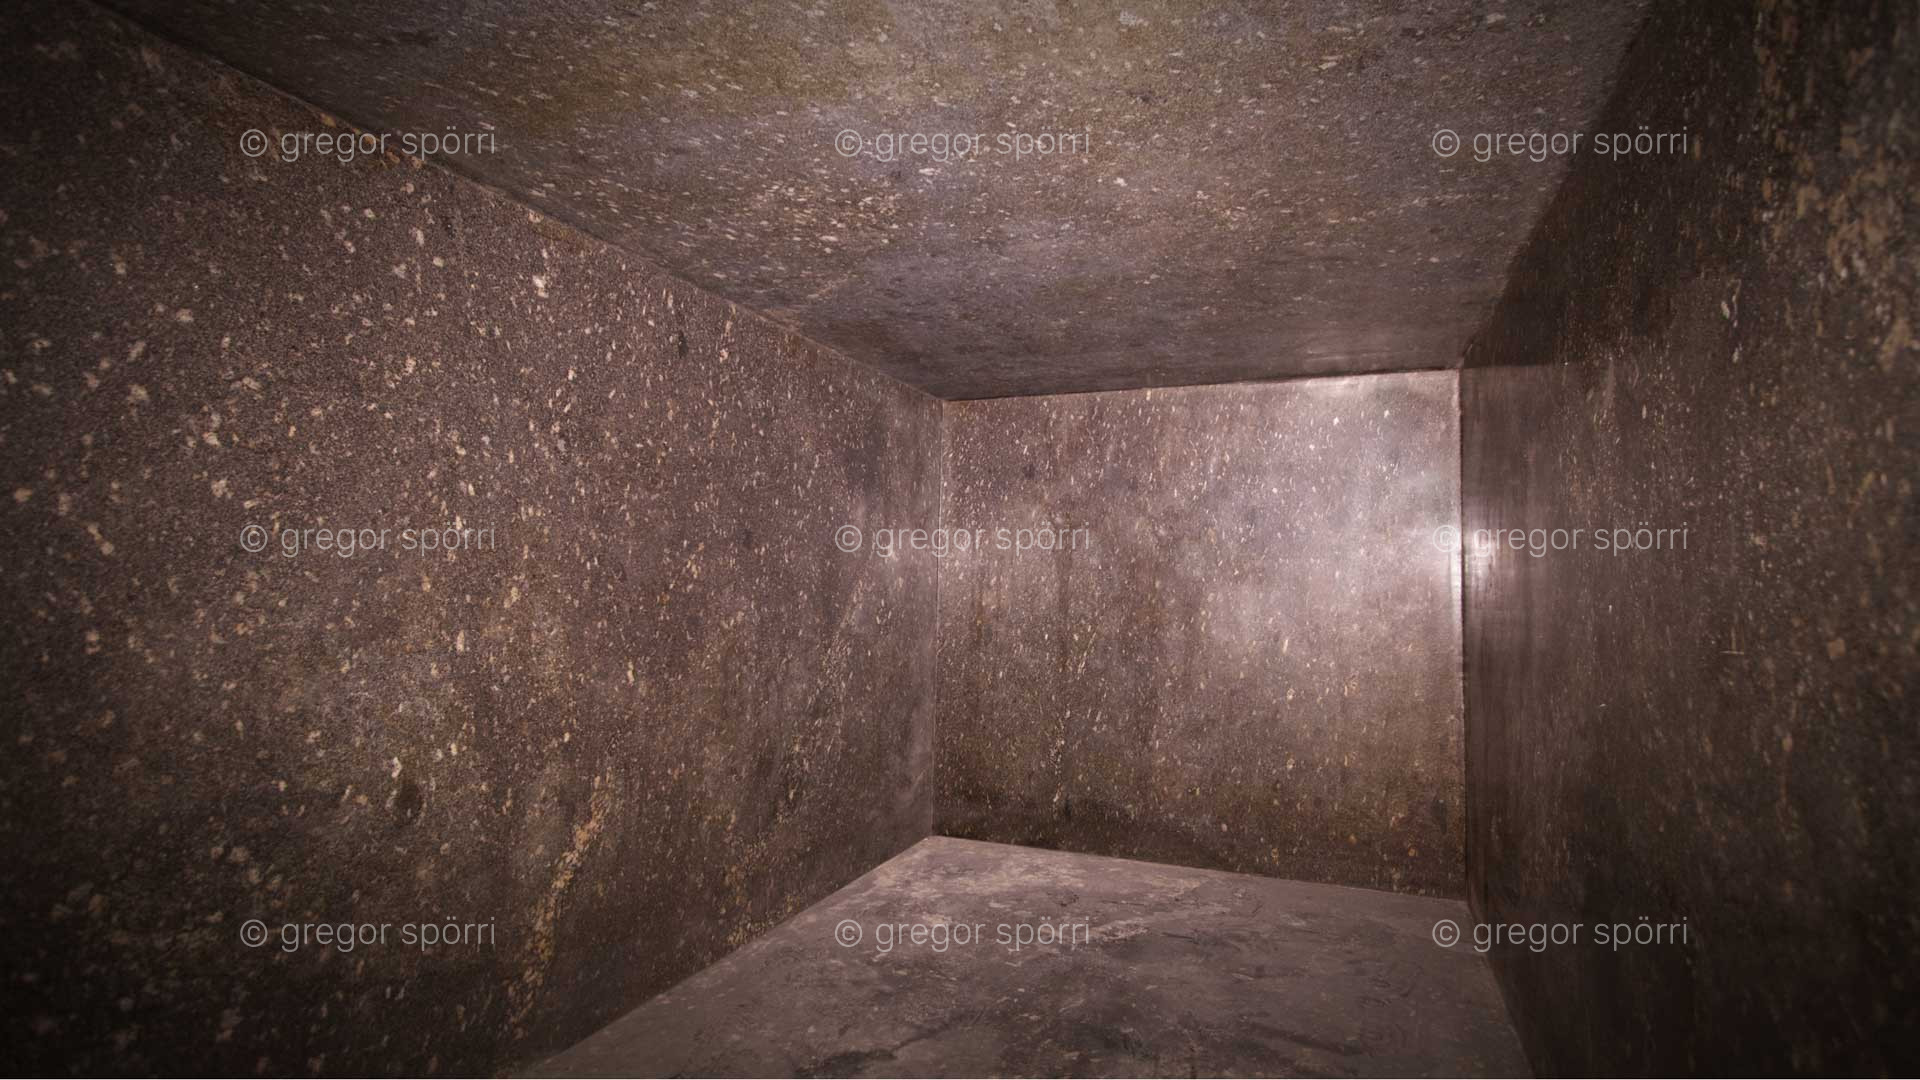 The interior of the sarcophagi is lightning-clean except for dust deposits